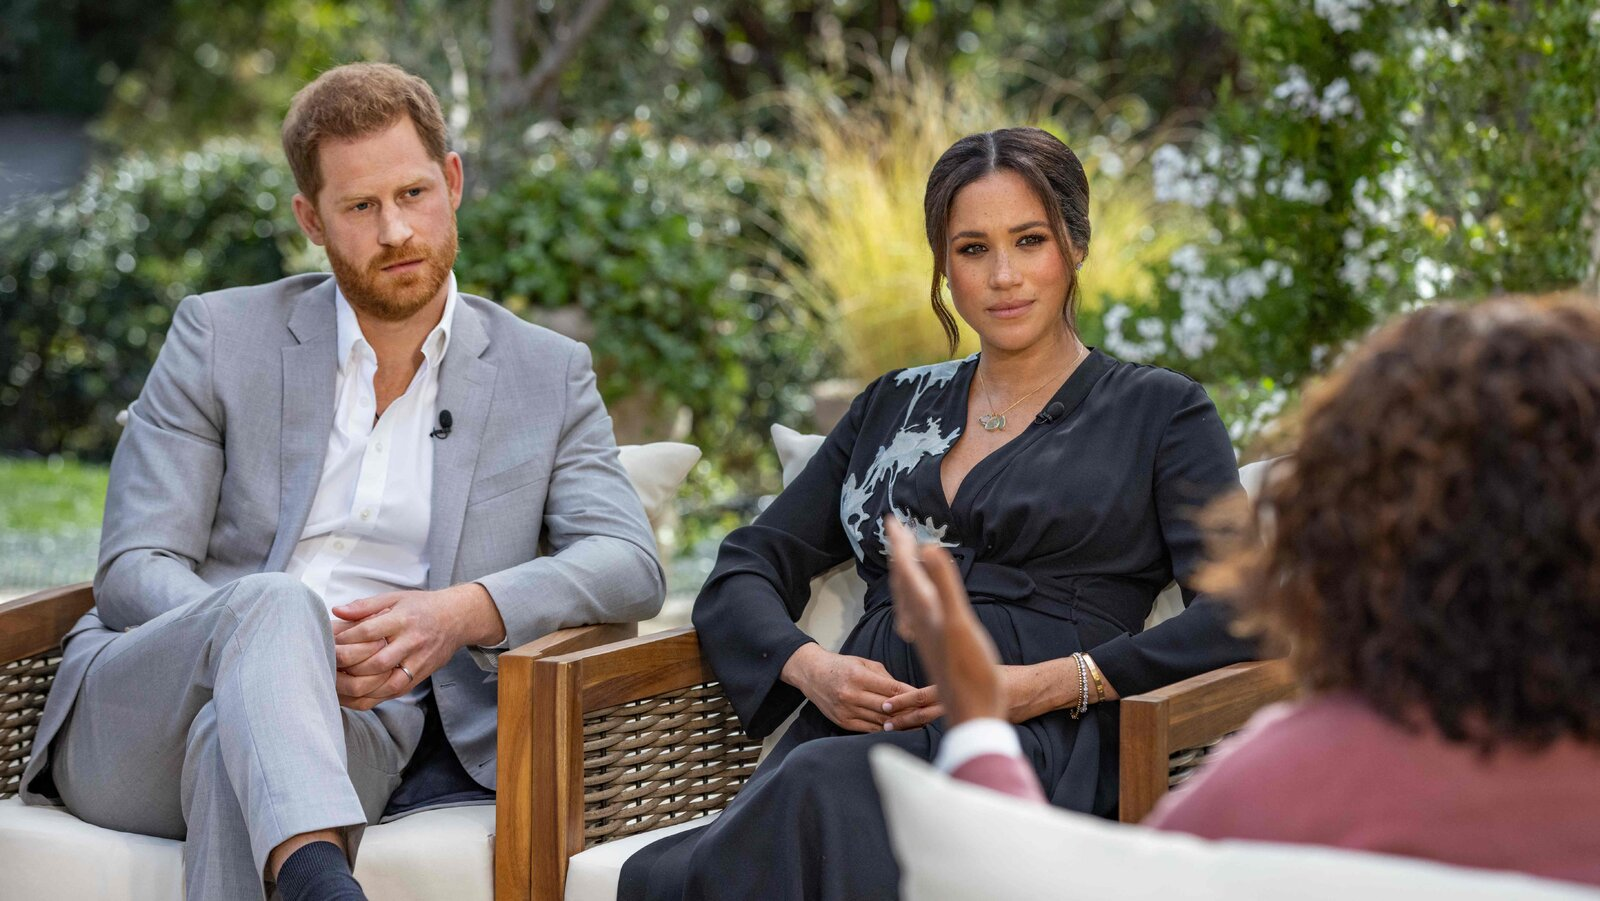 OPRAH'S INTERVIEW WITH MEGHAN AND HARRY